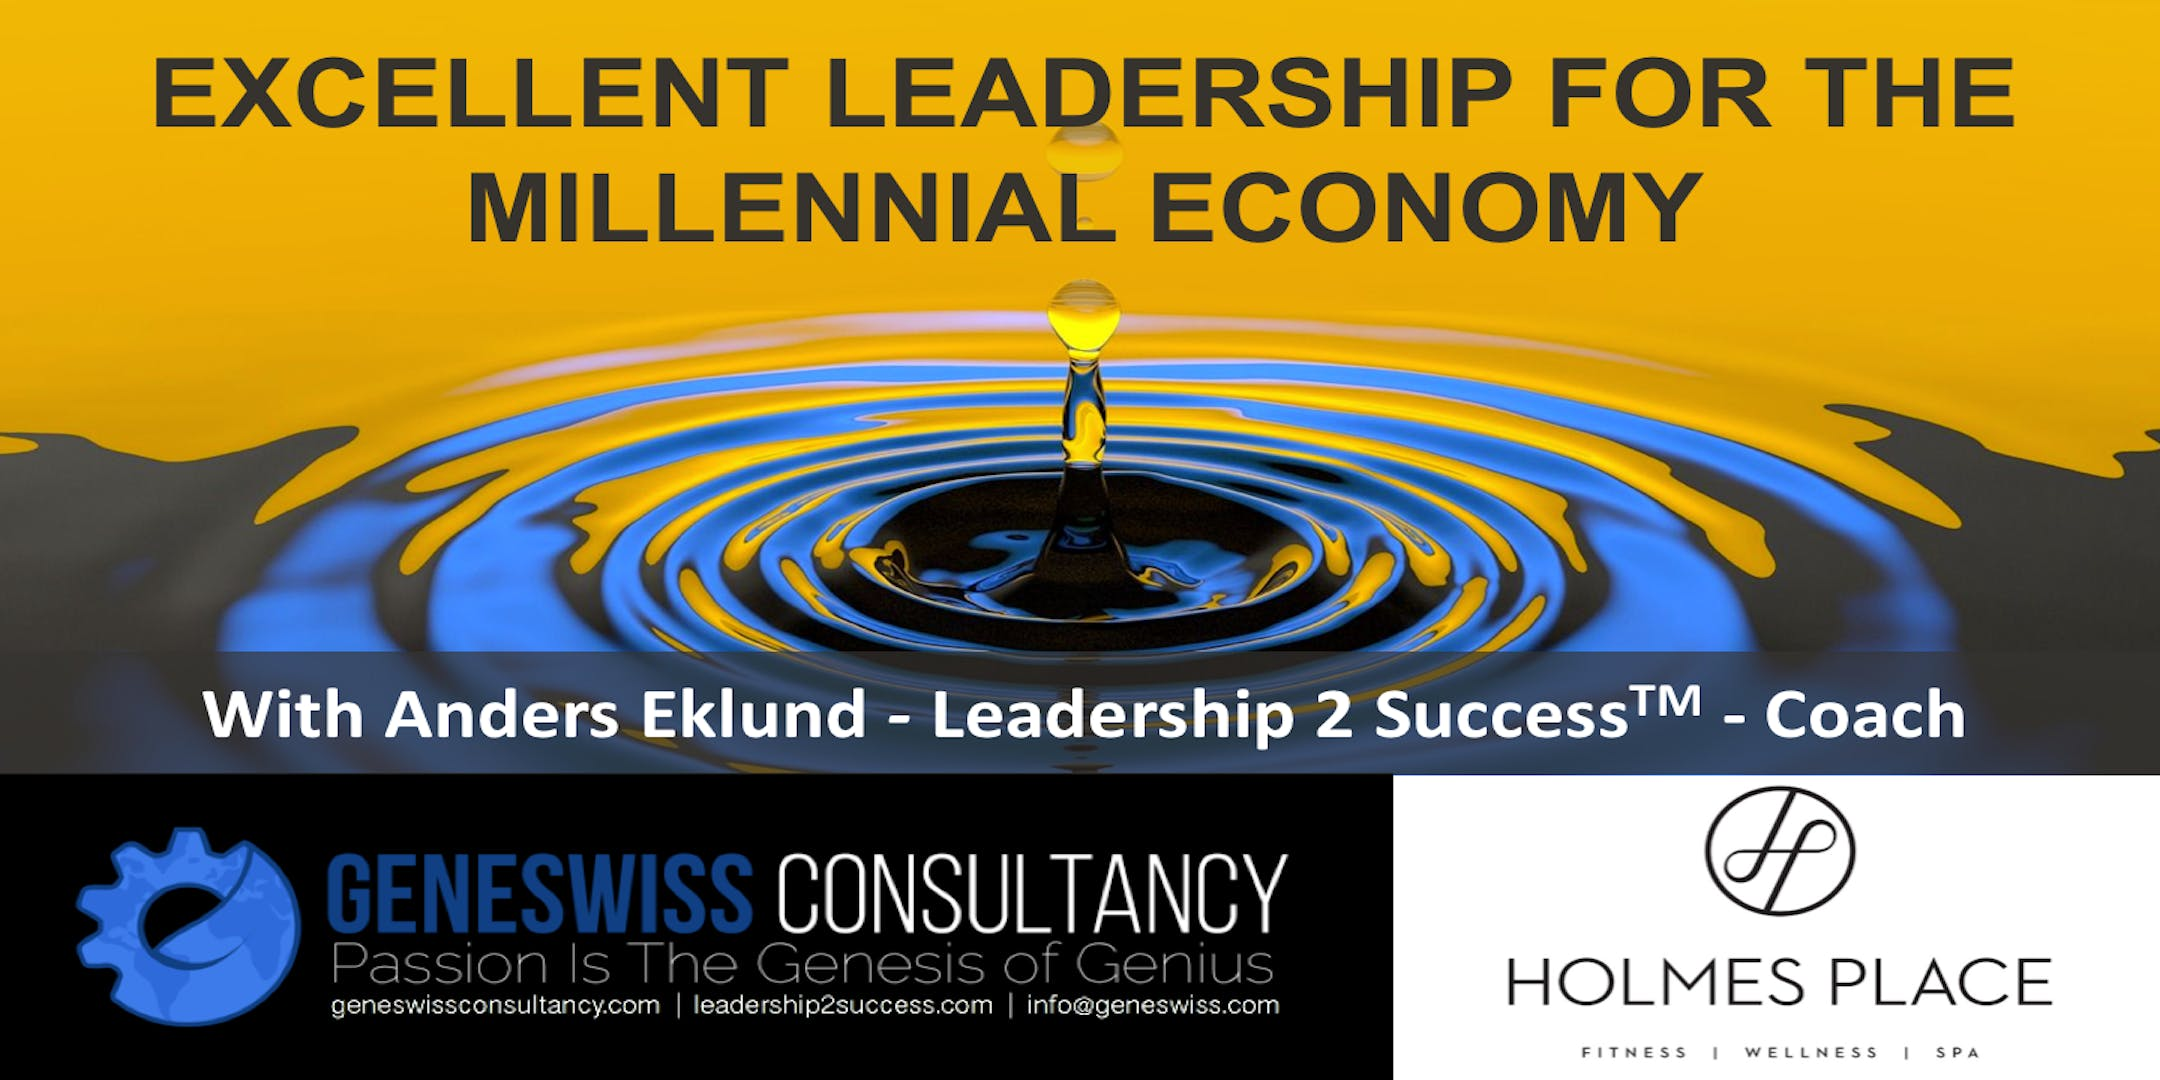 EXCELLENT LEADERSHIP FOR THE MILLENNIAL ECONOMY